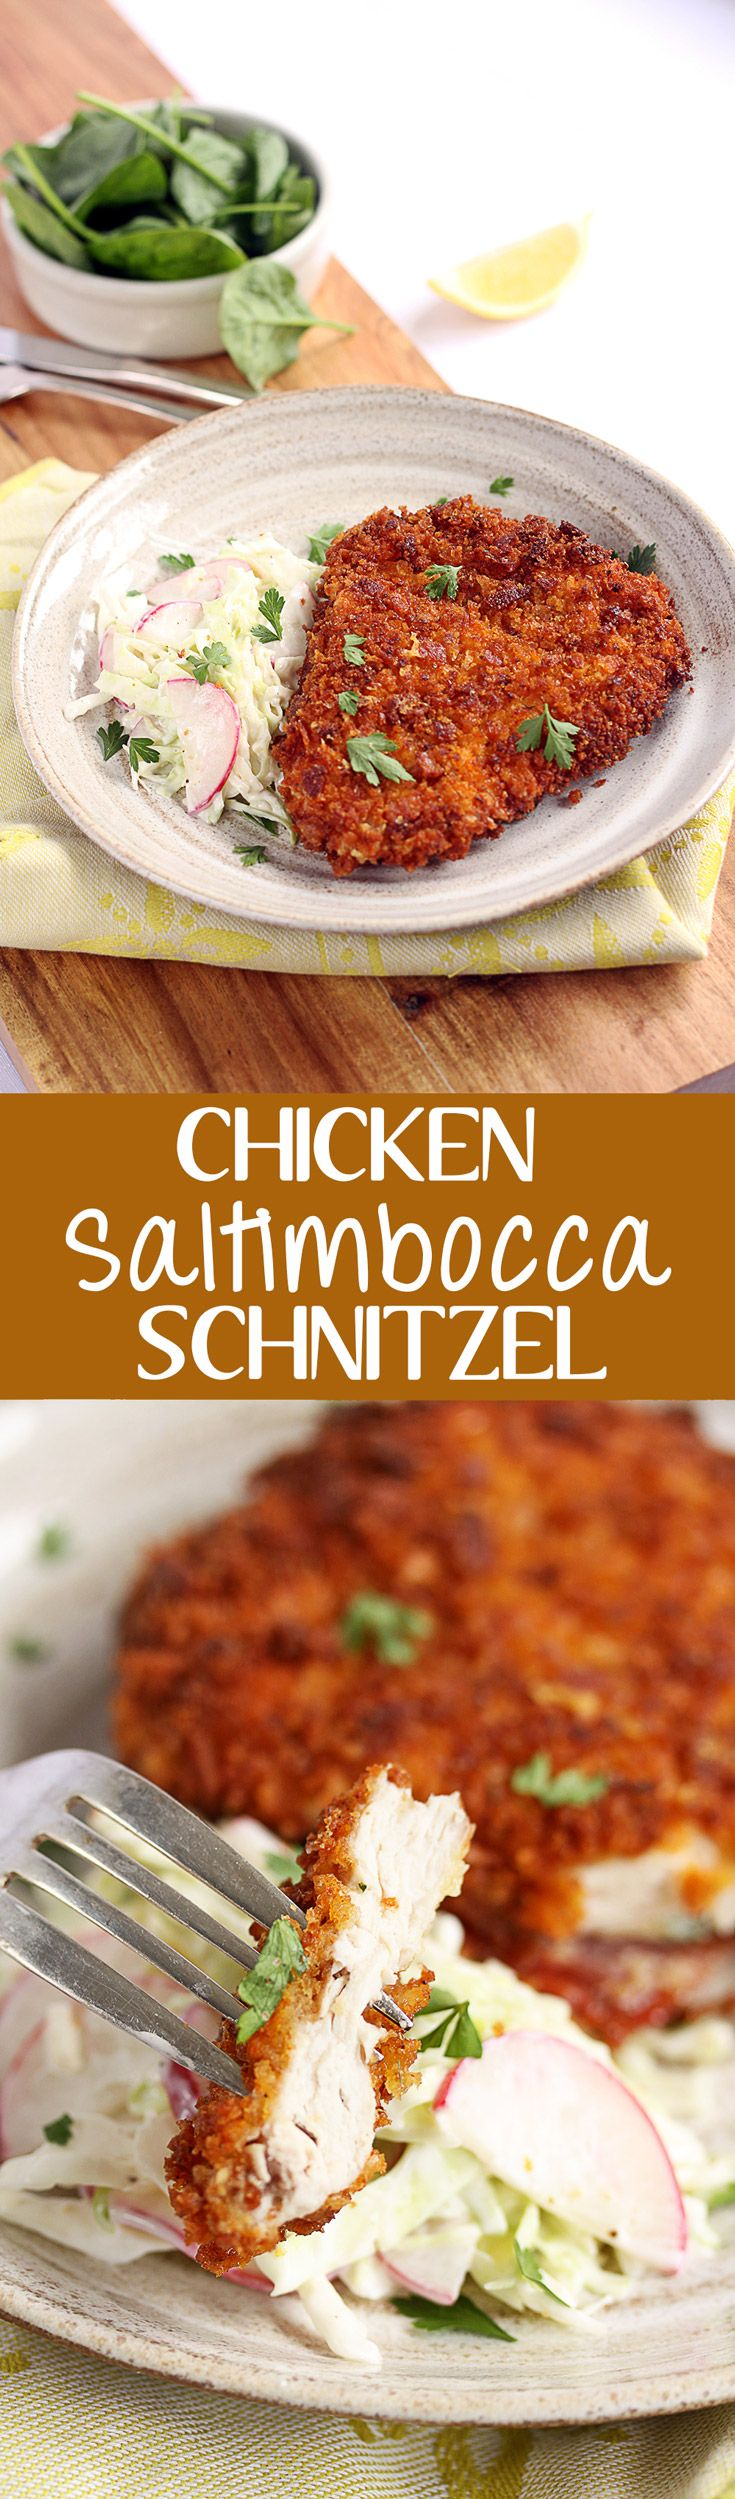 This perfect schnitzel recipe can be an enigma but here it is in all it's glory. Chicken Saltimbocca Schnitzel by Sugar Salt Magic via @sugarsaltmagic